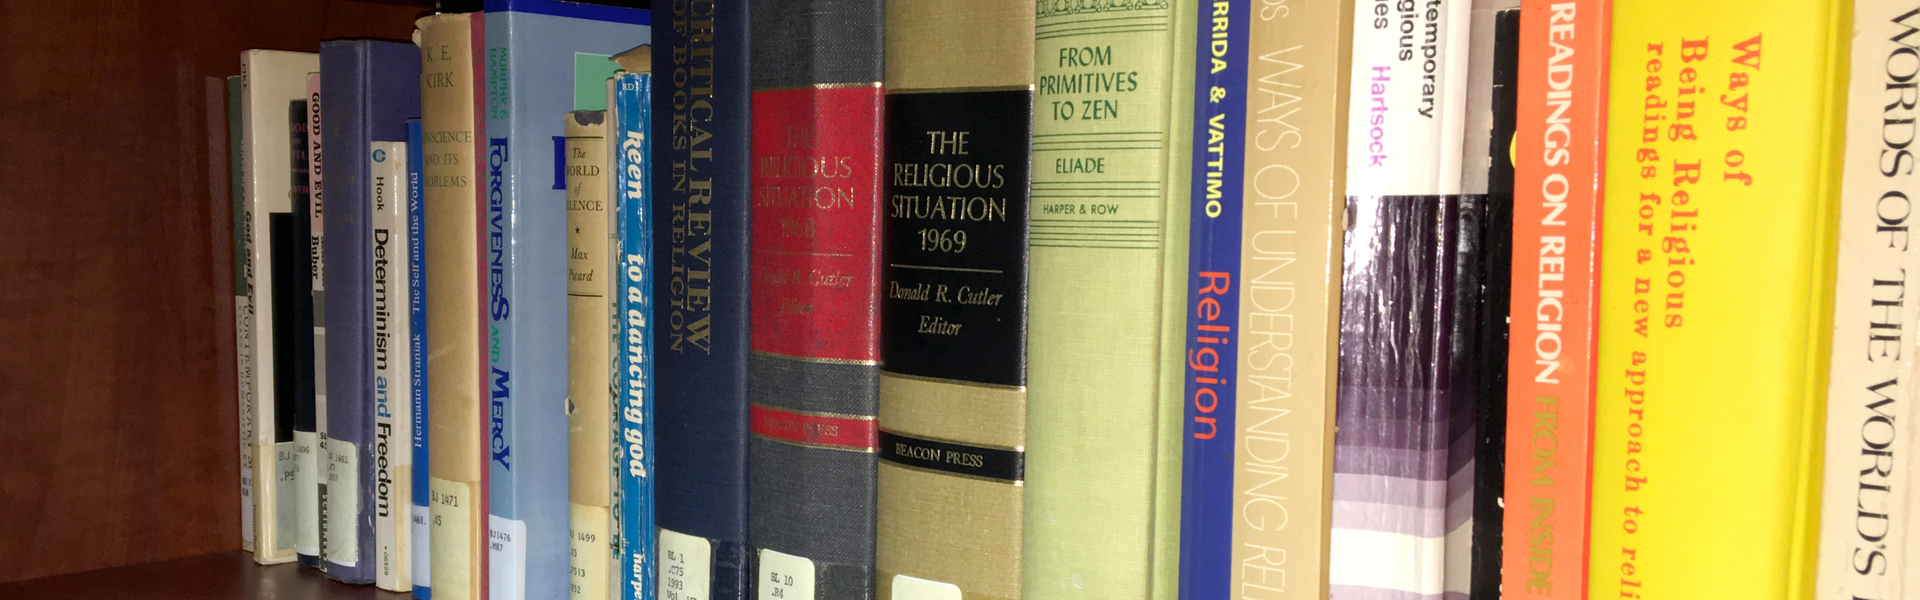 Books in philosophy and religious studies library